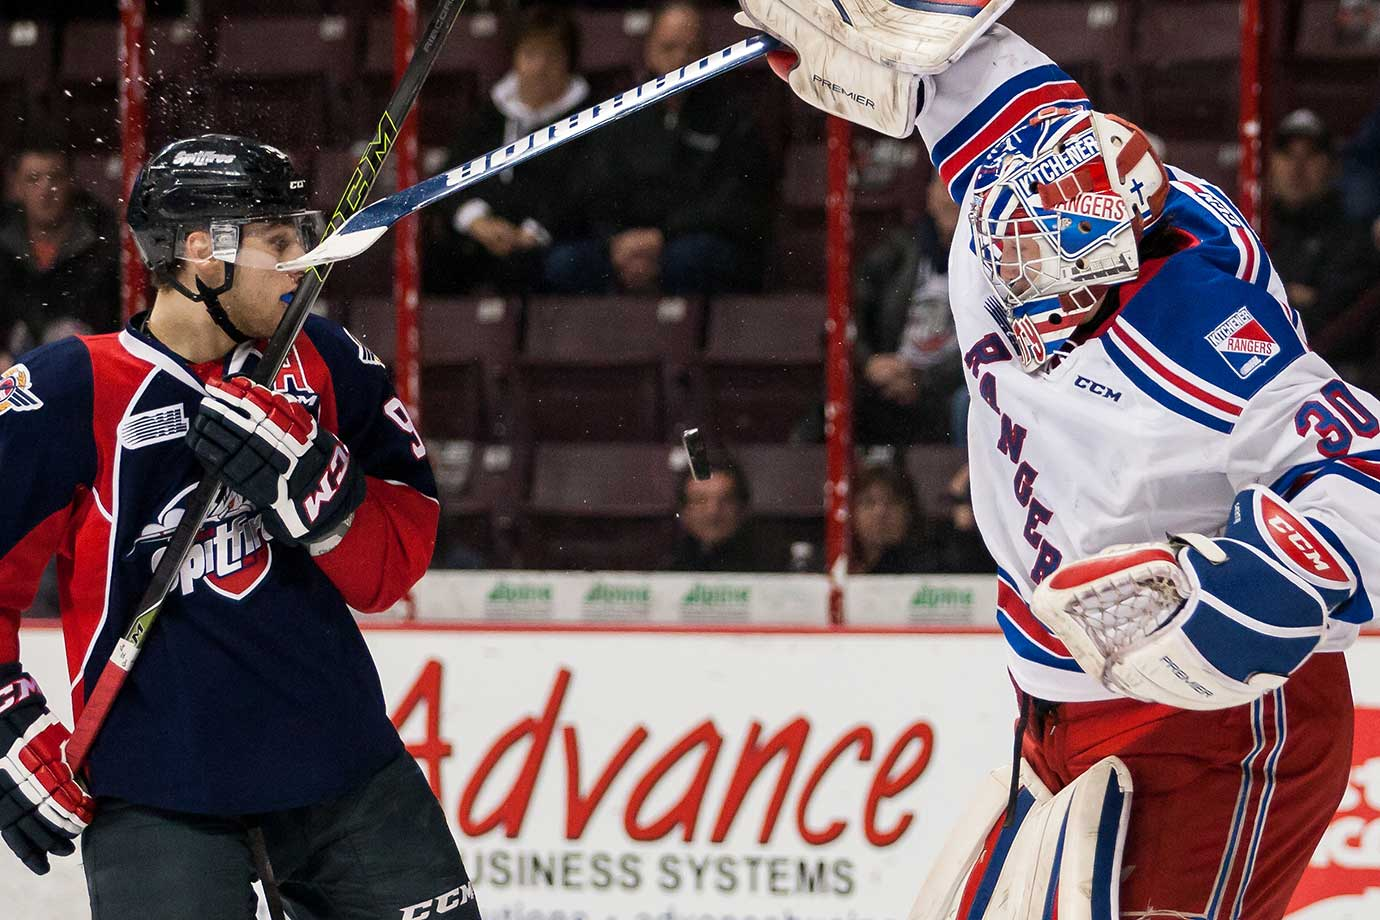 Goaltender Dawson Carty of the Kitchener Rangers battles for the puck (middle of picture) against Cristiano DiGiacinto of the Windsor Spitfires during Game 3 of the Western Conference quarterfinal series in the Ontario Hockey League.